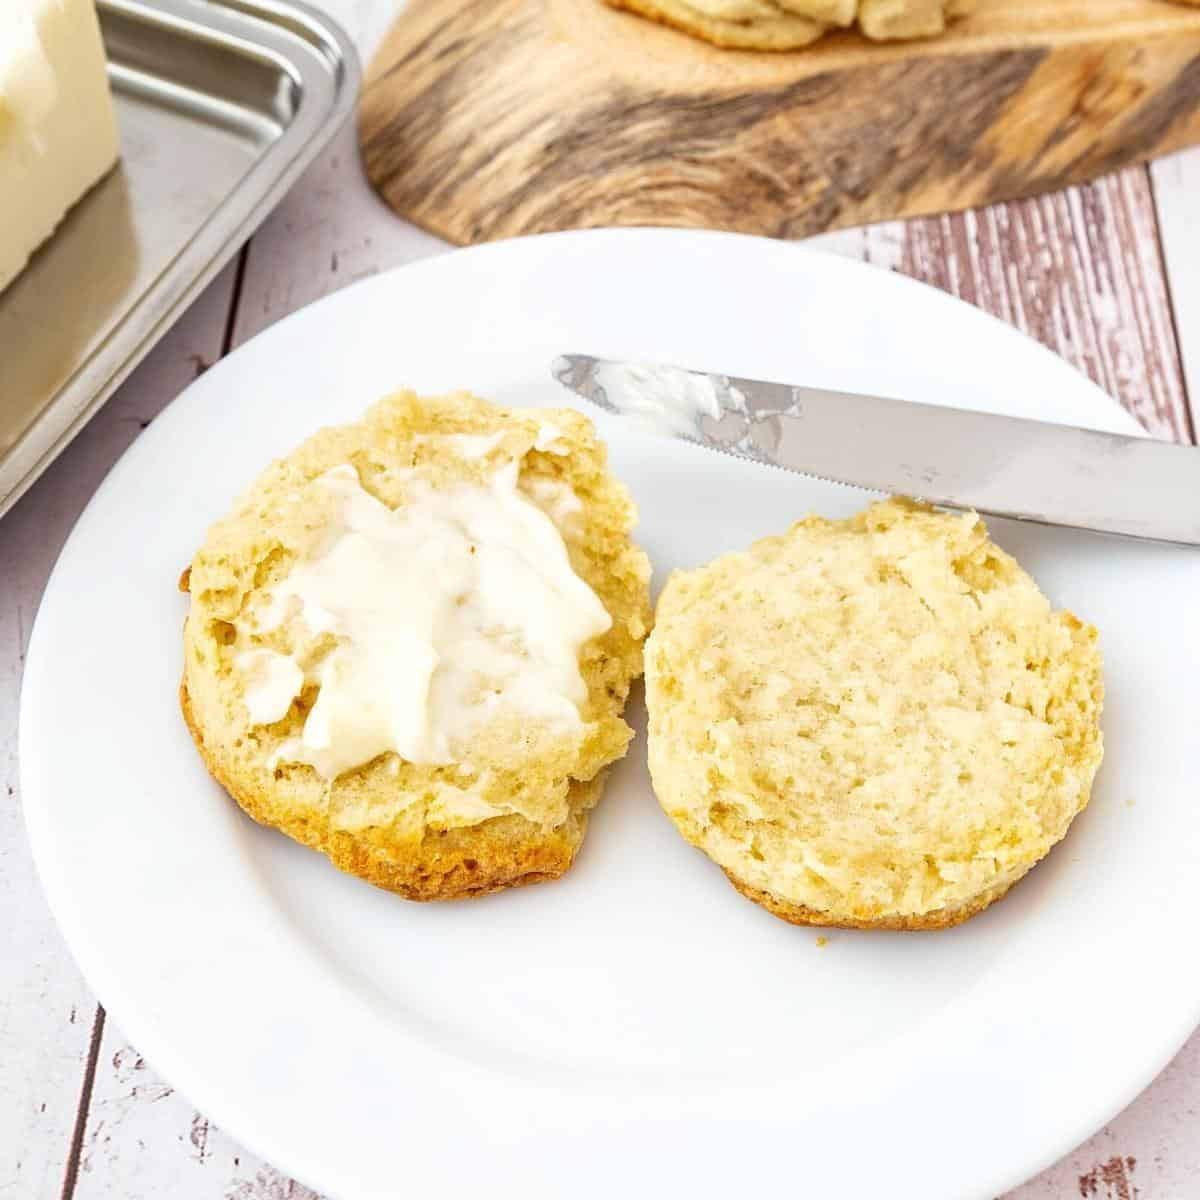 A sliced biscuit with butter on a plate.